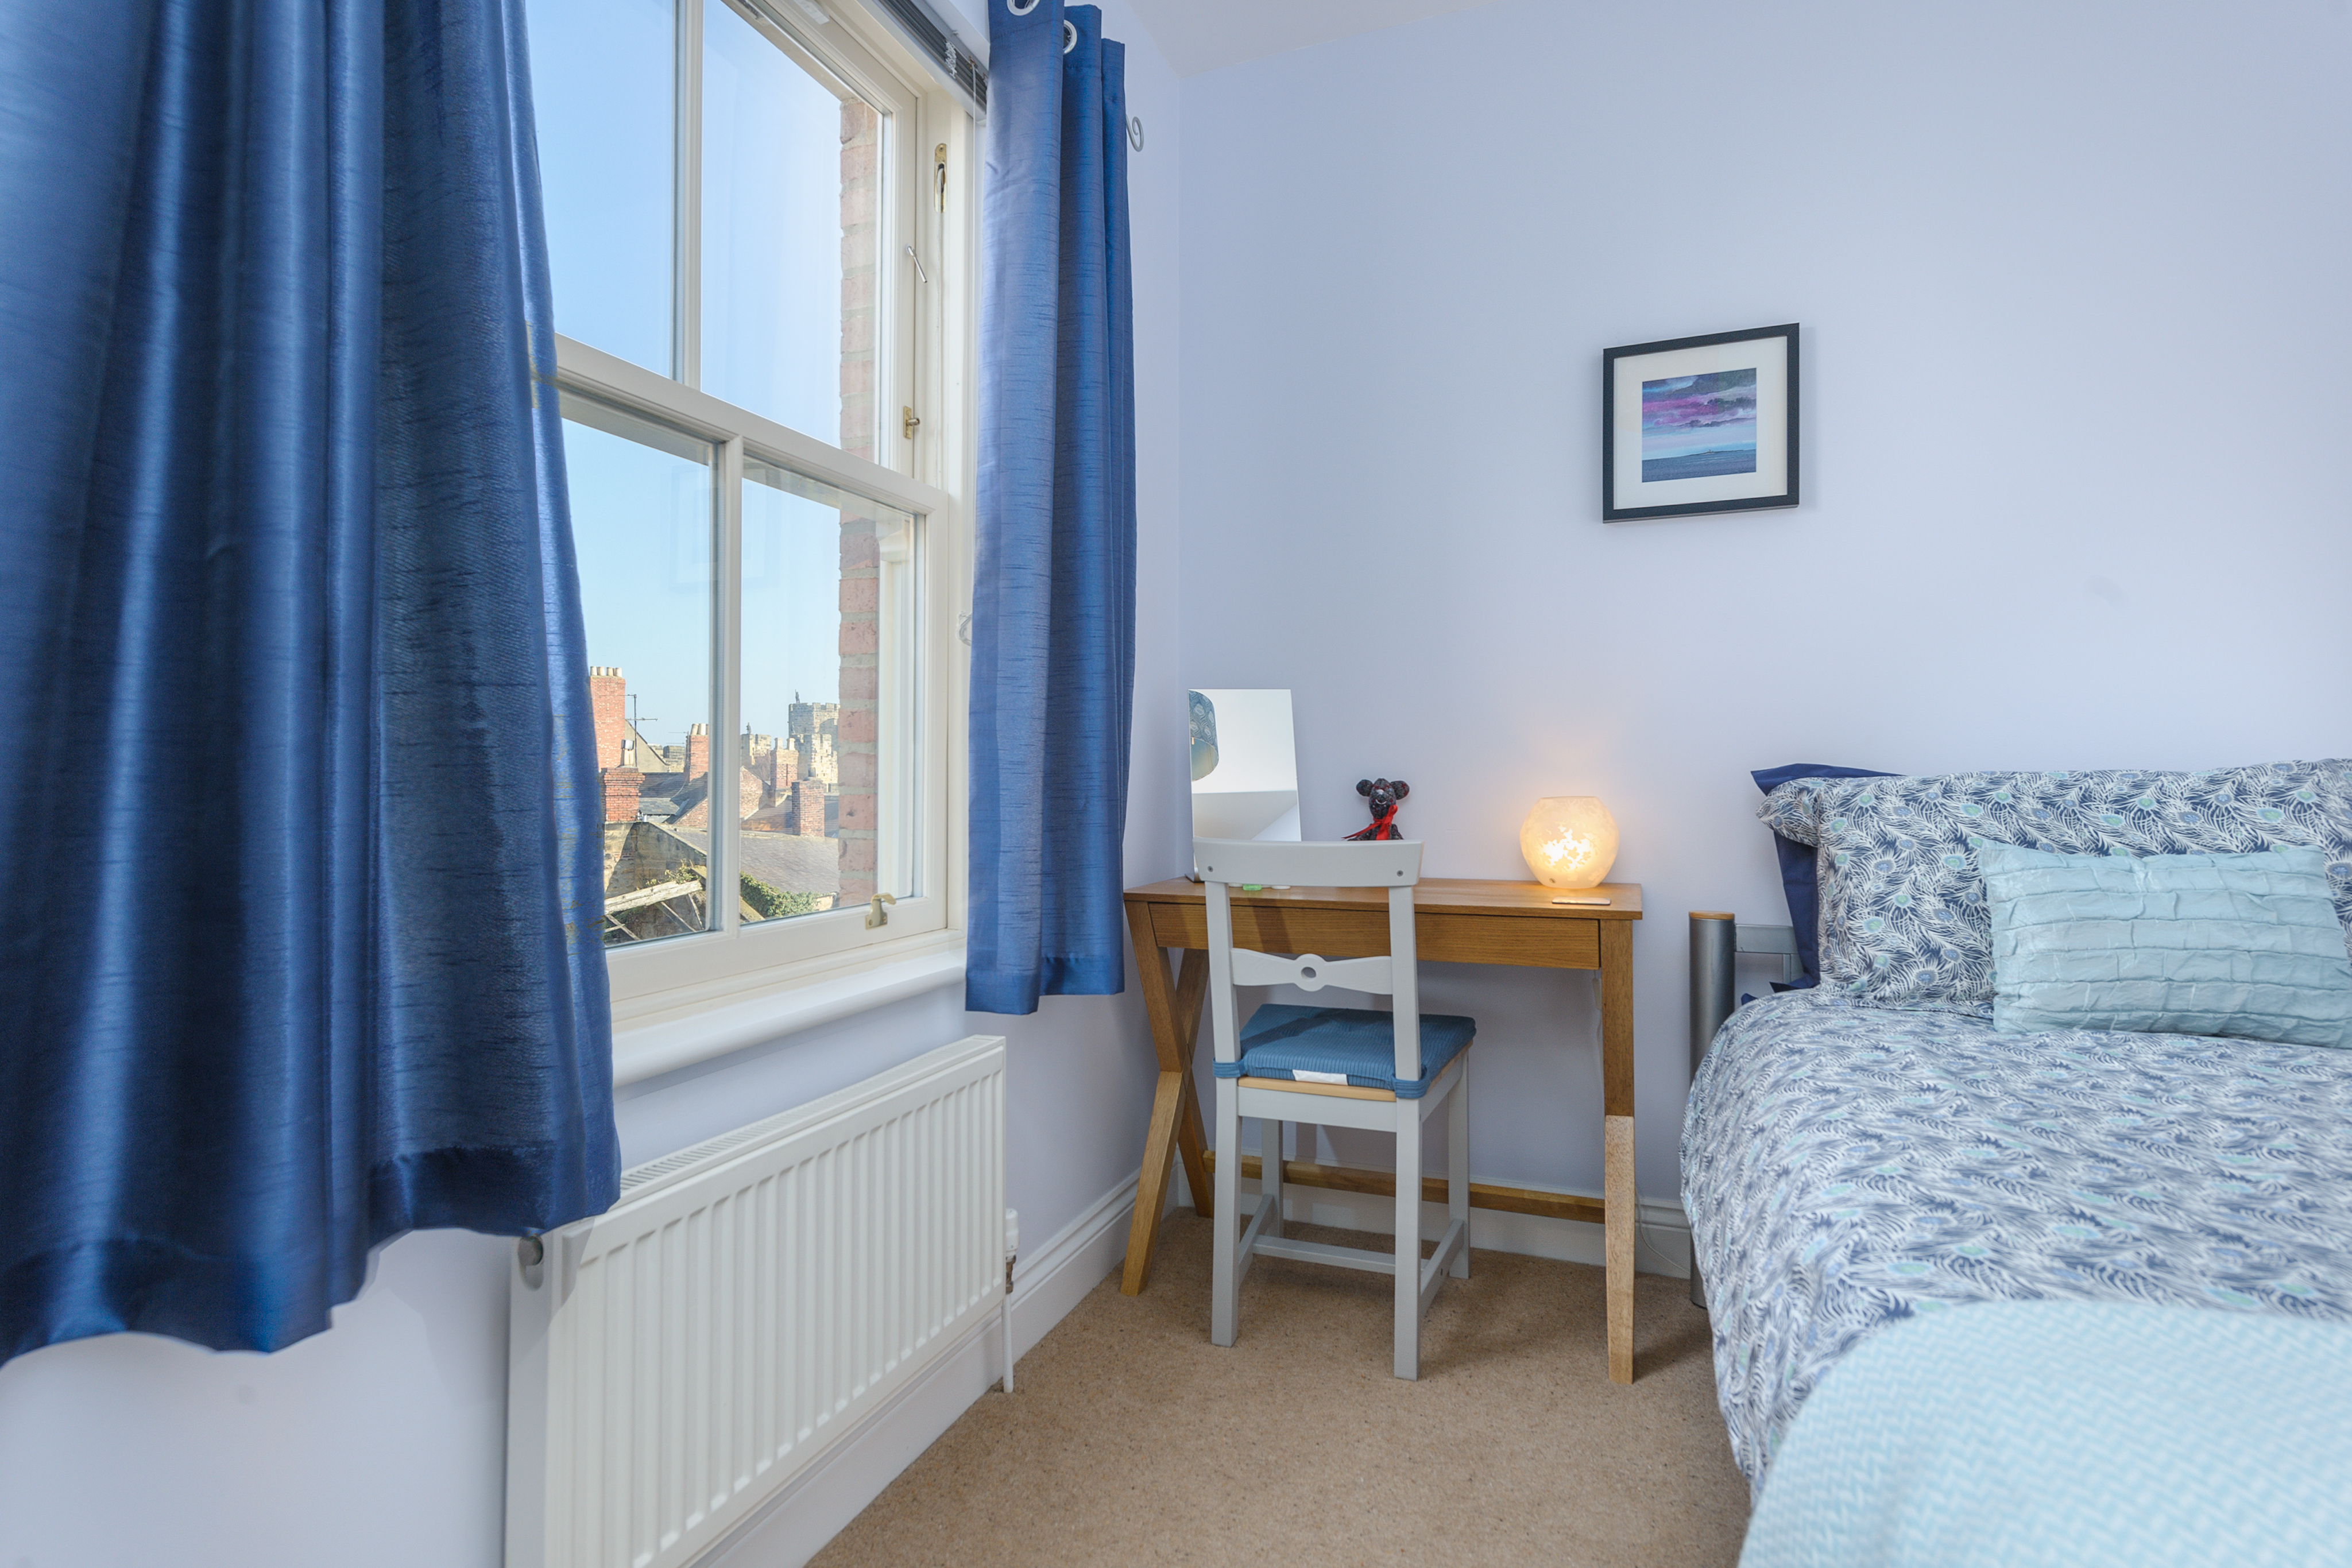 luxury holiday cottages in Alnwick available for new year sleeps 6 real fire